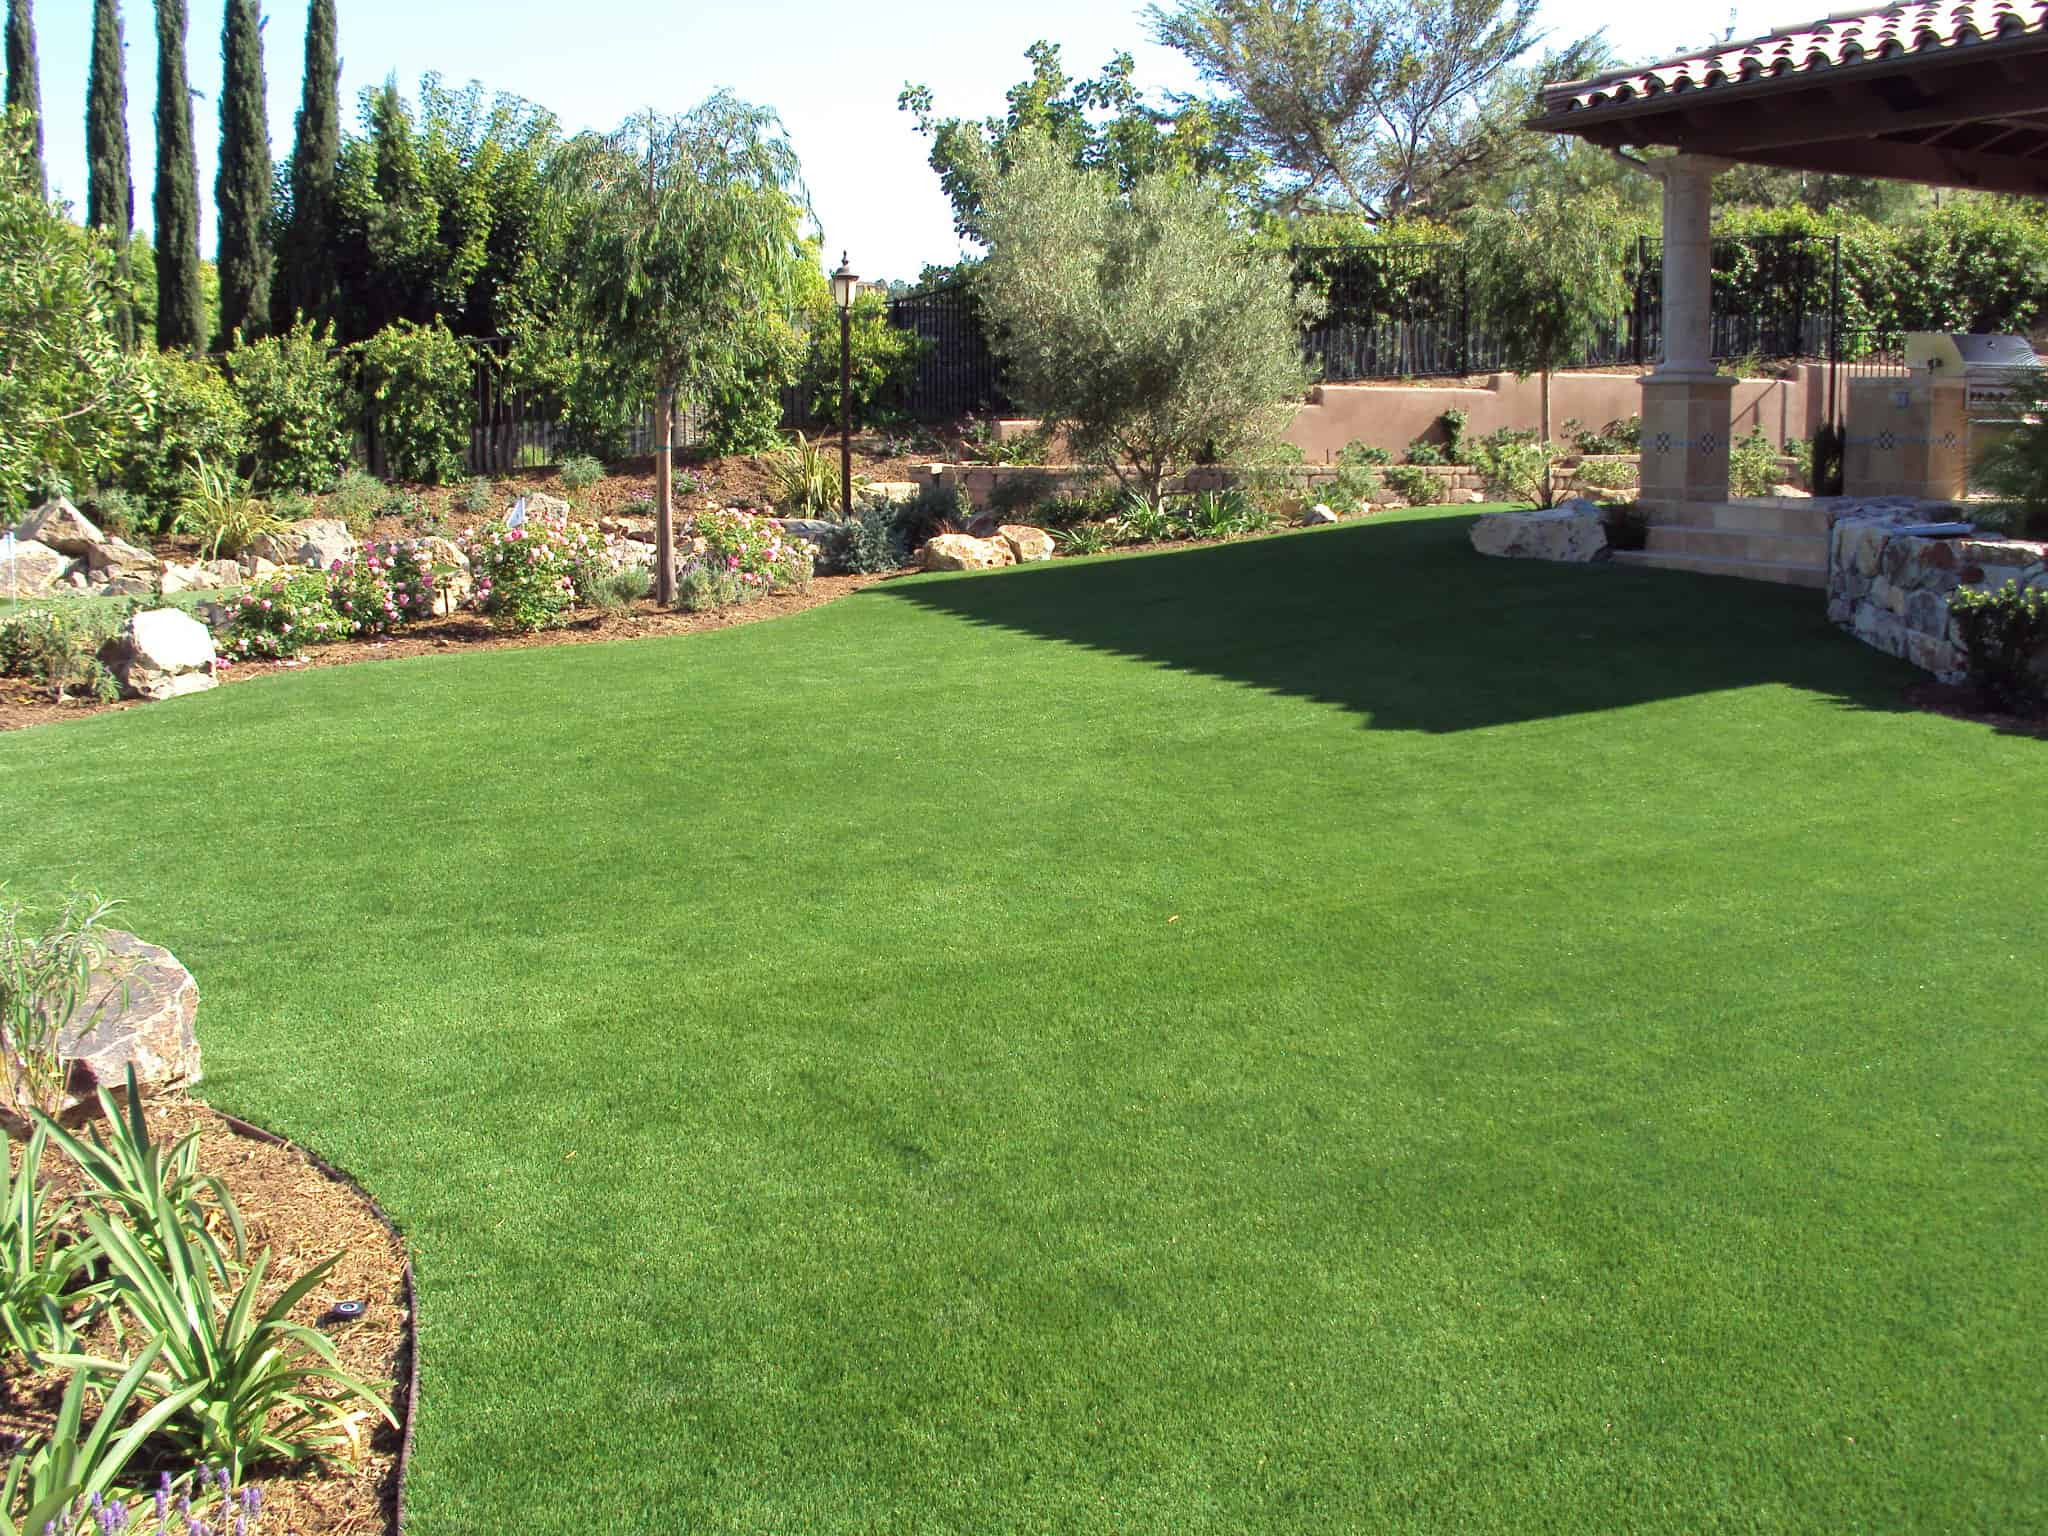 Grass Artificial Full Namgrass India Pvt Ltd Artificial Lawn India